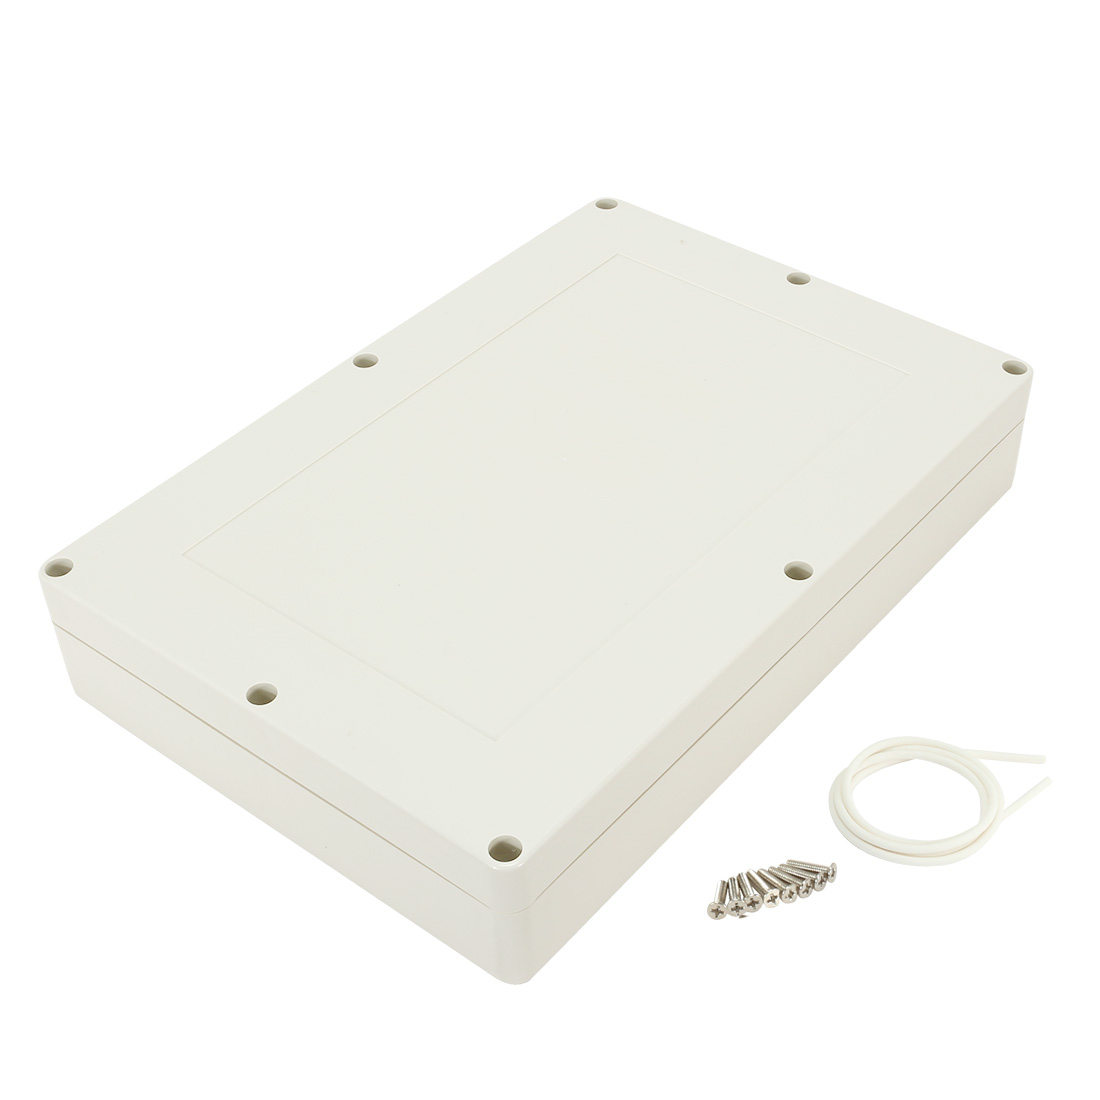 "15""x10.2""x2.76""(380mmx260mmx70mm) ABS Junction Box Universal Electric Project Enclosure"